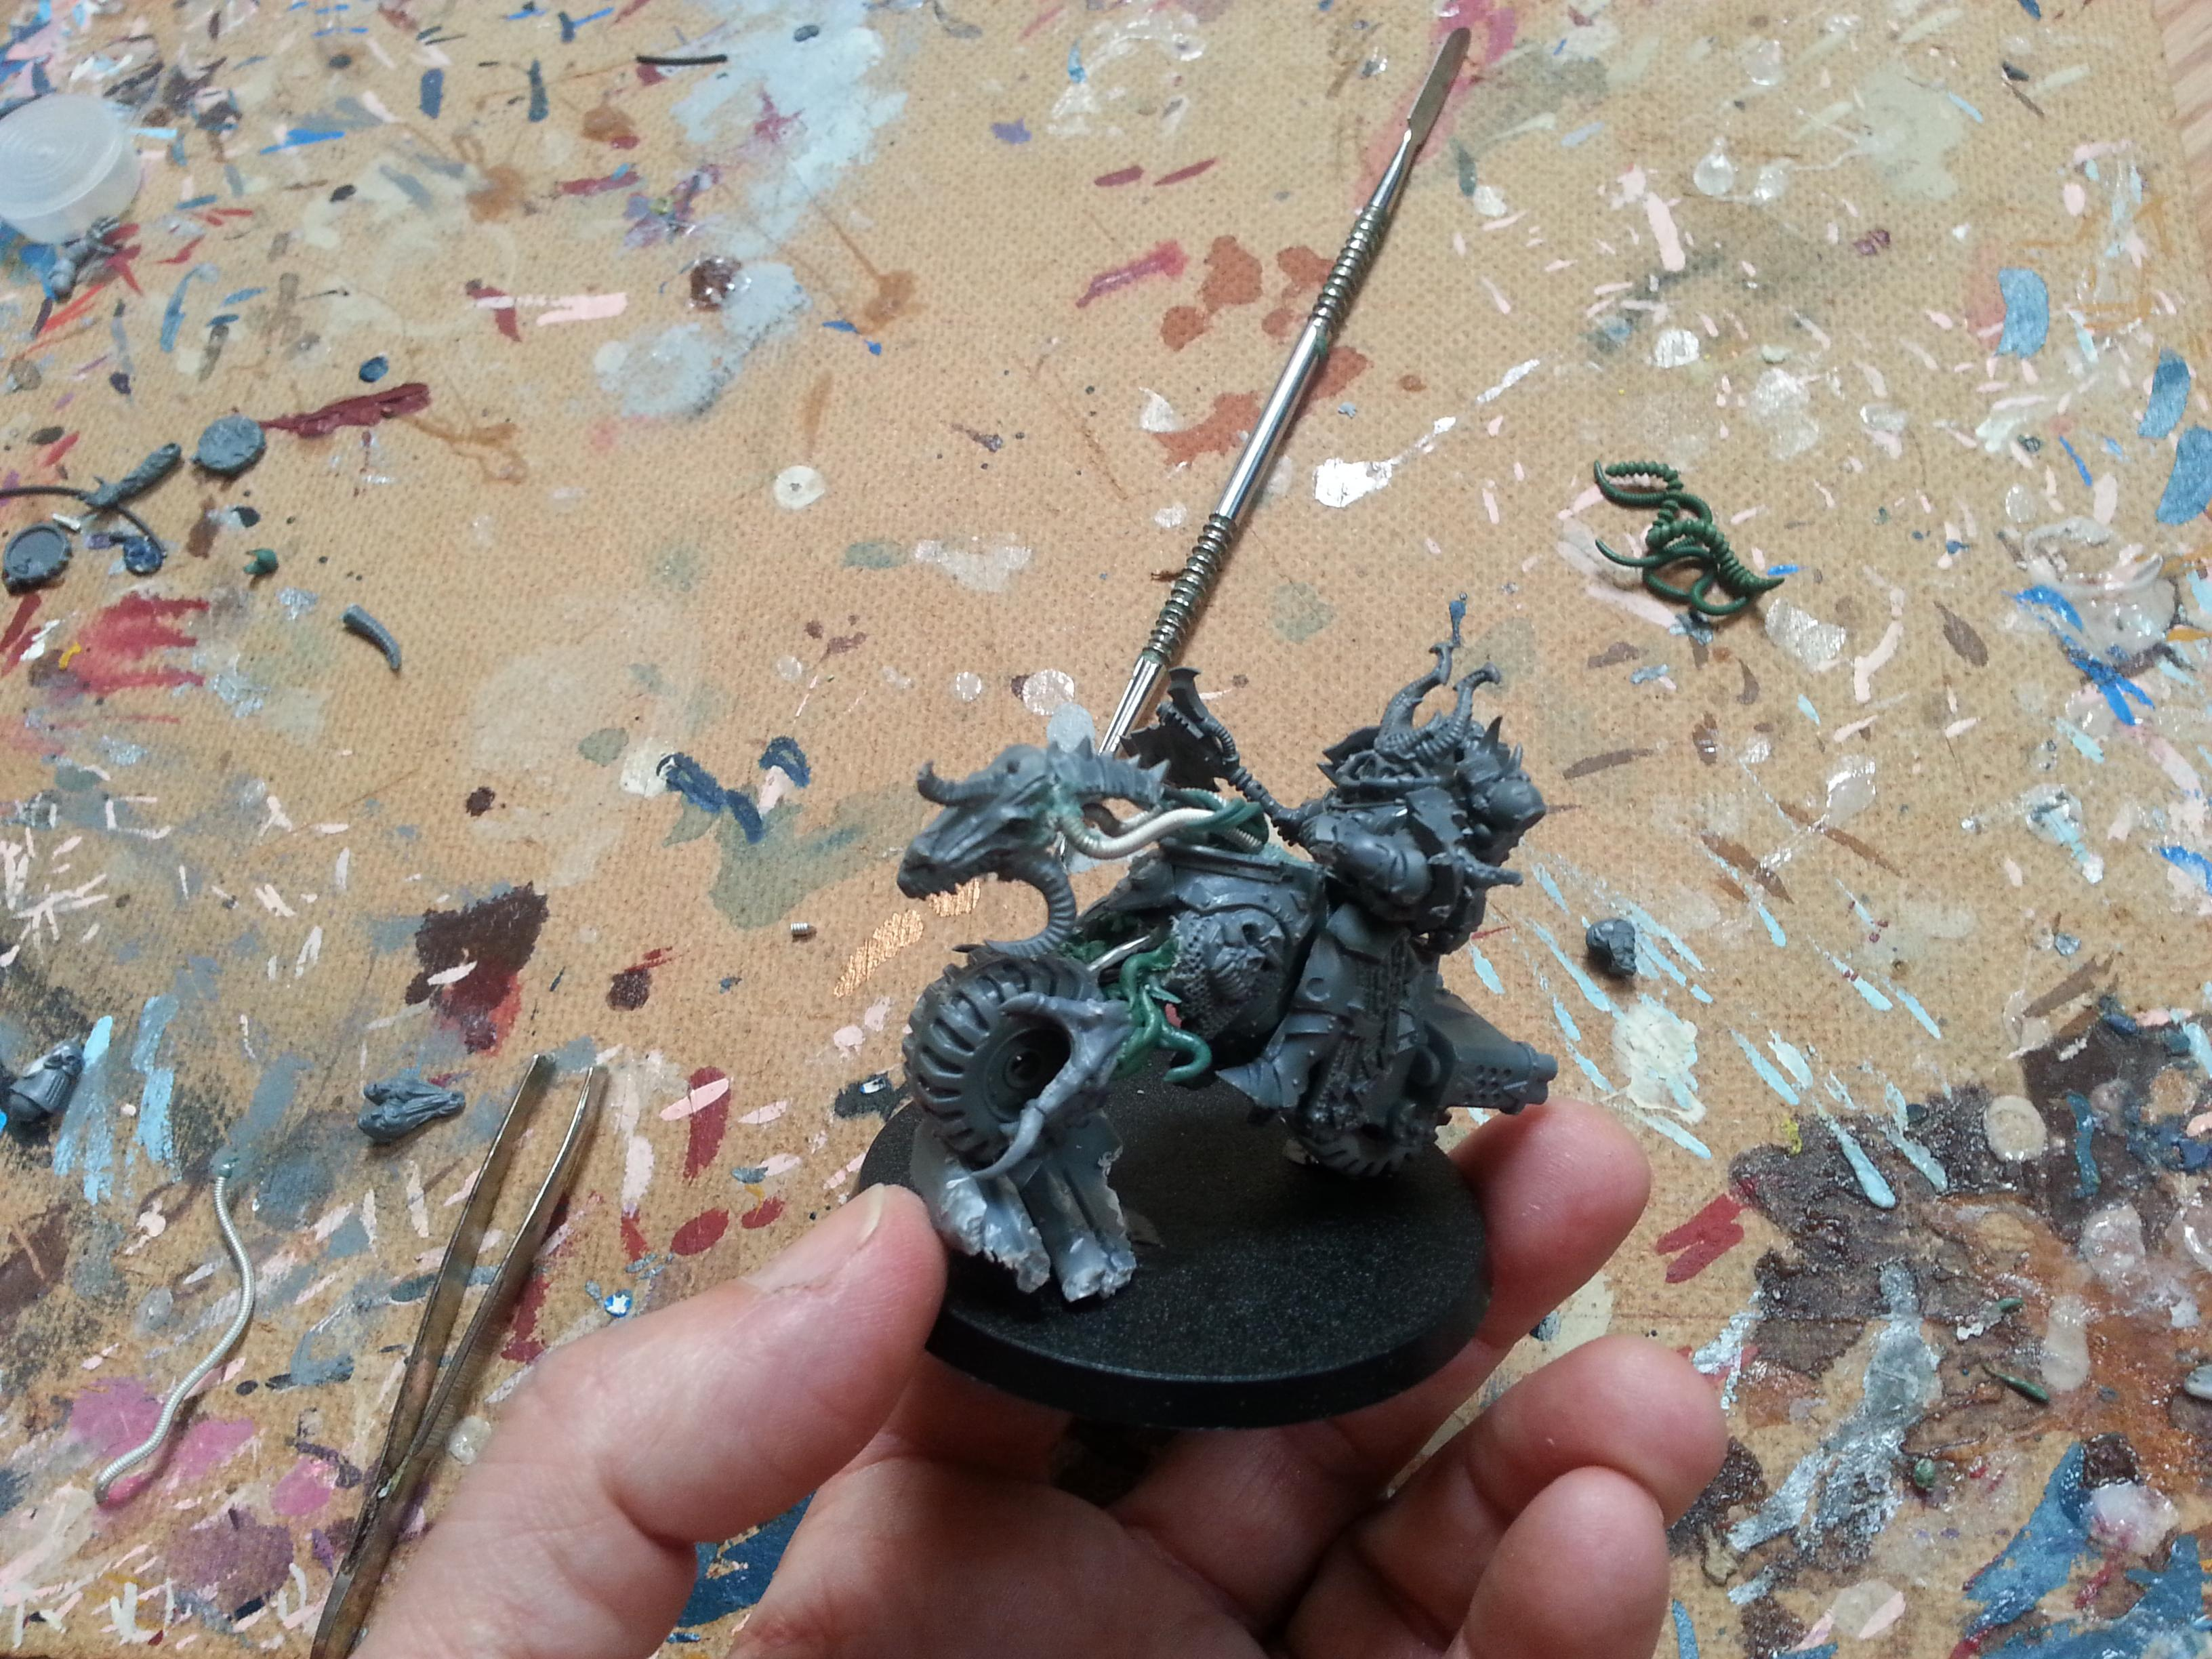 Axe Of Khorne, Chaos, Chaos Bikers, Chaos Lord, Chaos Space Marines, Conversion, Khorne, Knights